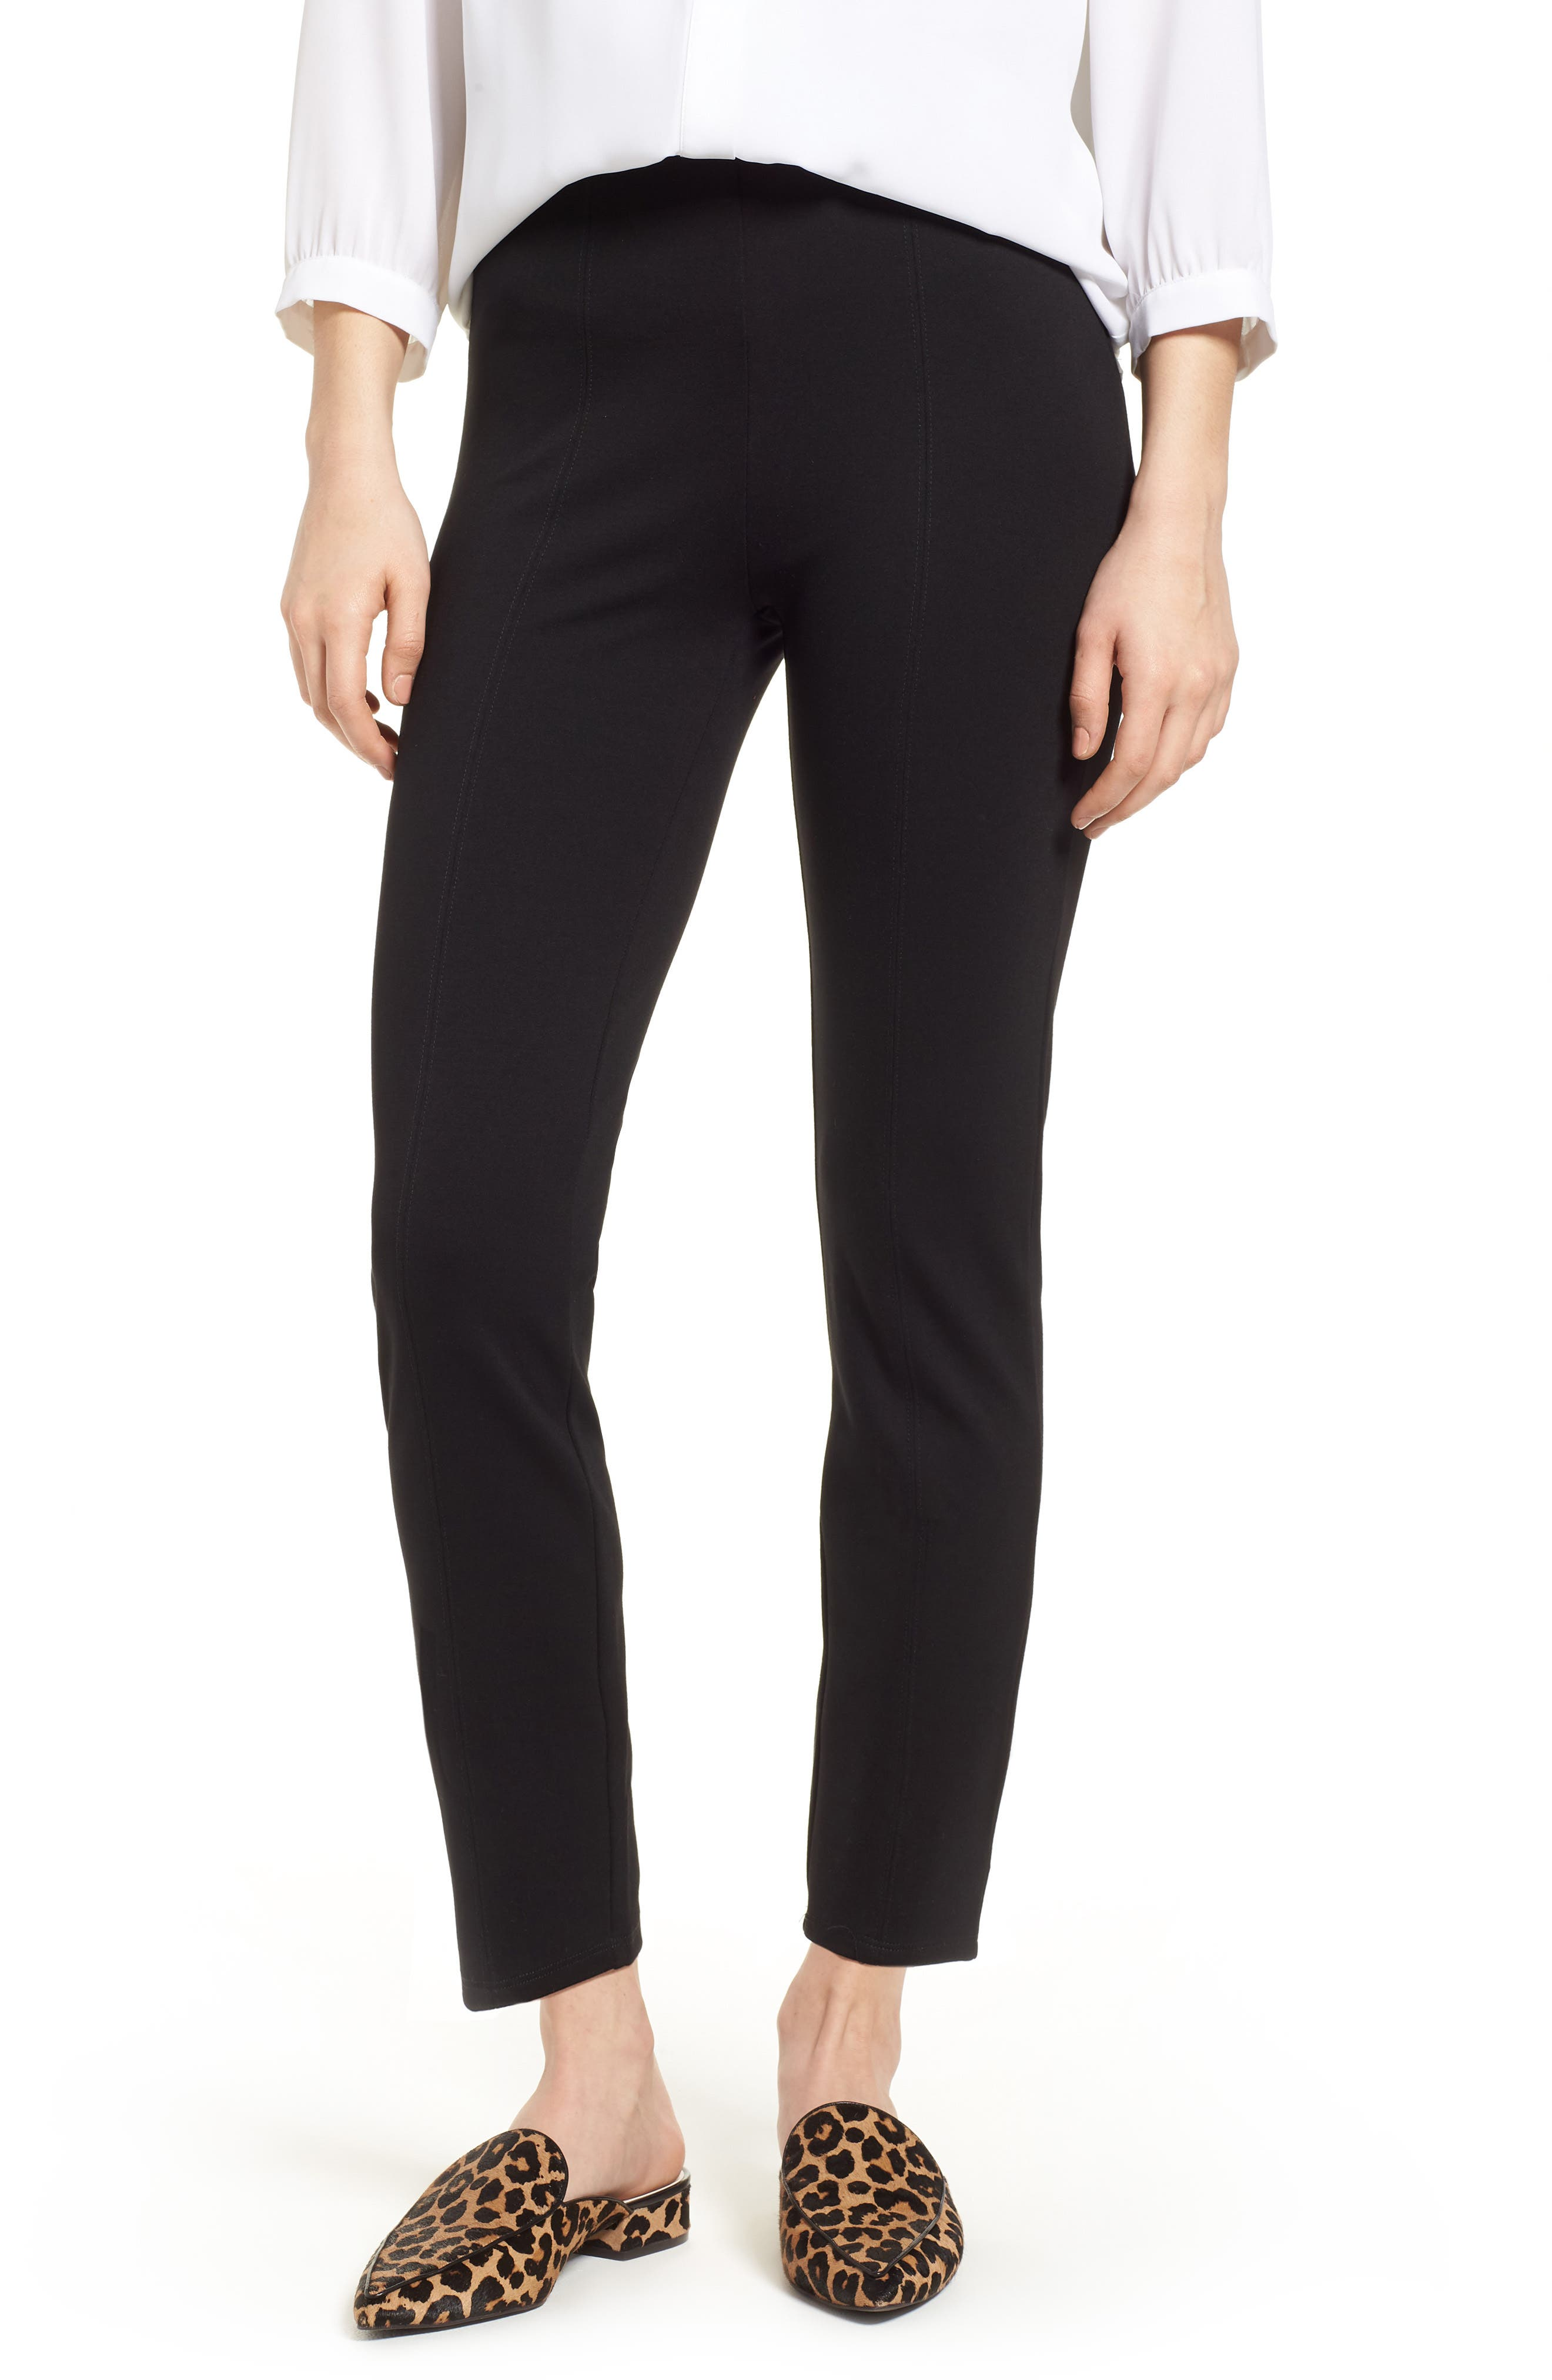 Macklin Ponte Leggings,                             Main thumbnail 1, color,                             Black